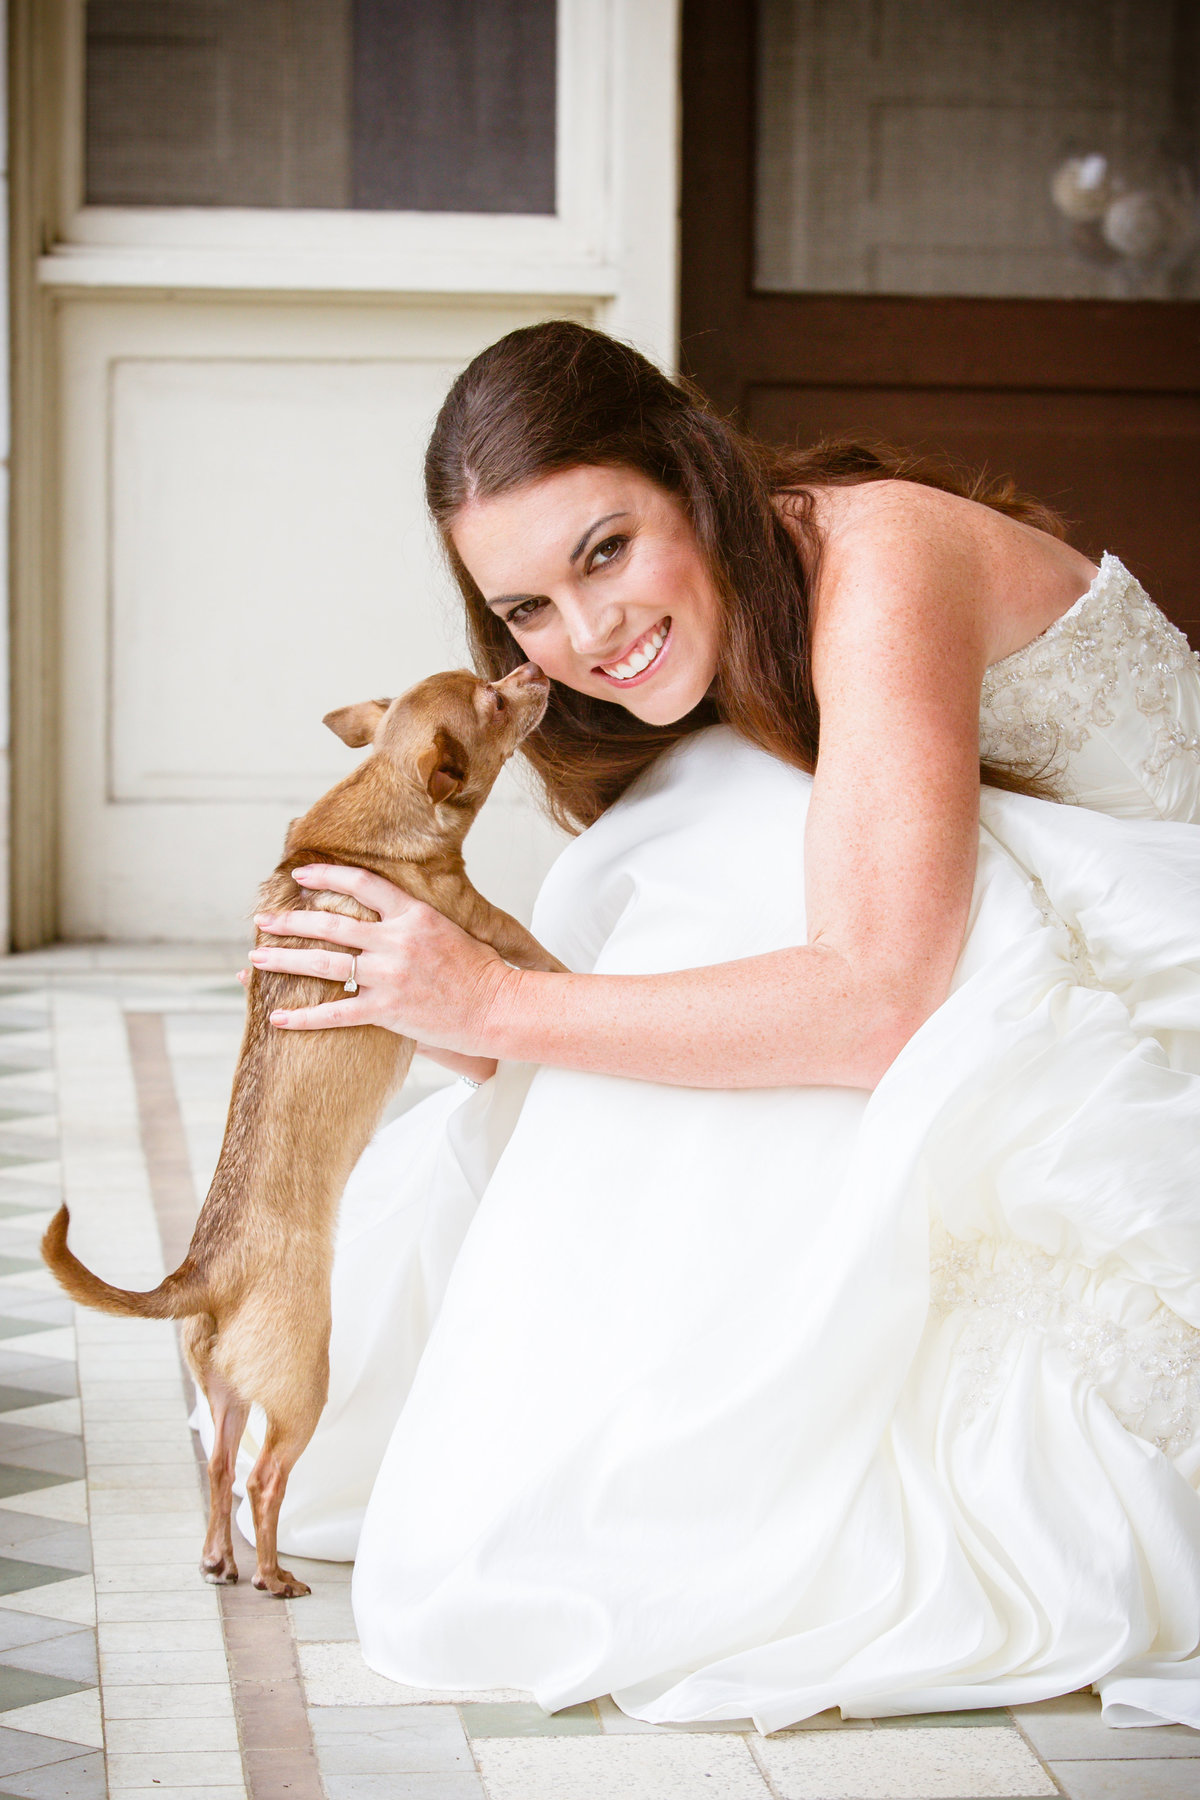 Lindsay Coulter's bridal photo with her dog Lucy before her wedding to George Zoghby in Mobile, Alabama.